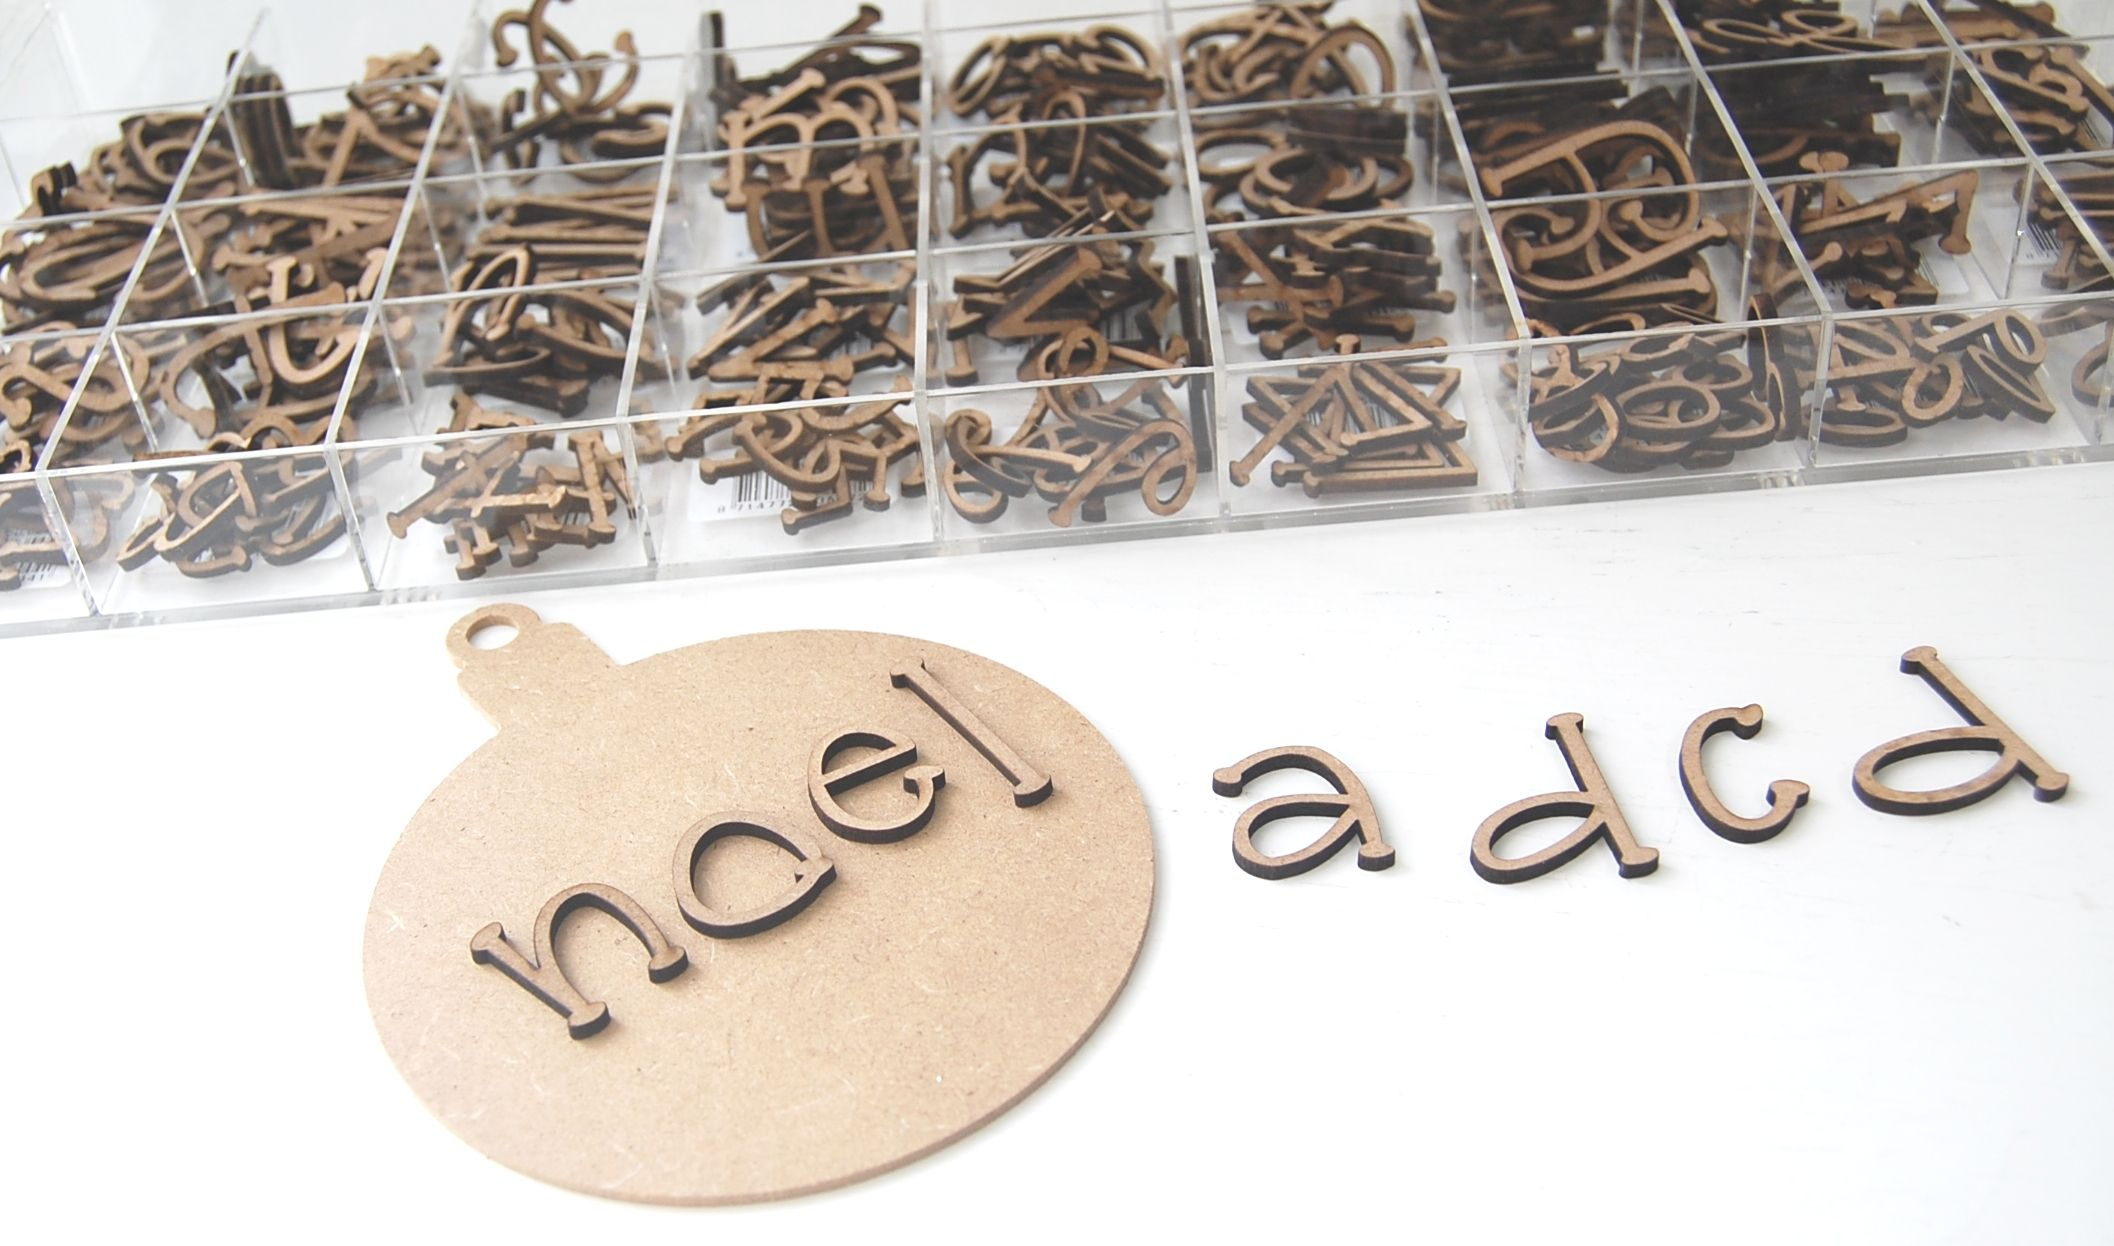 Small Metal Letters For Crafts Country Love Crafts  Coming Soon Small Wooden Craft Letters